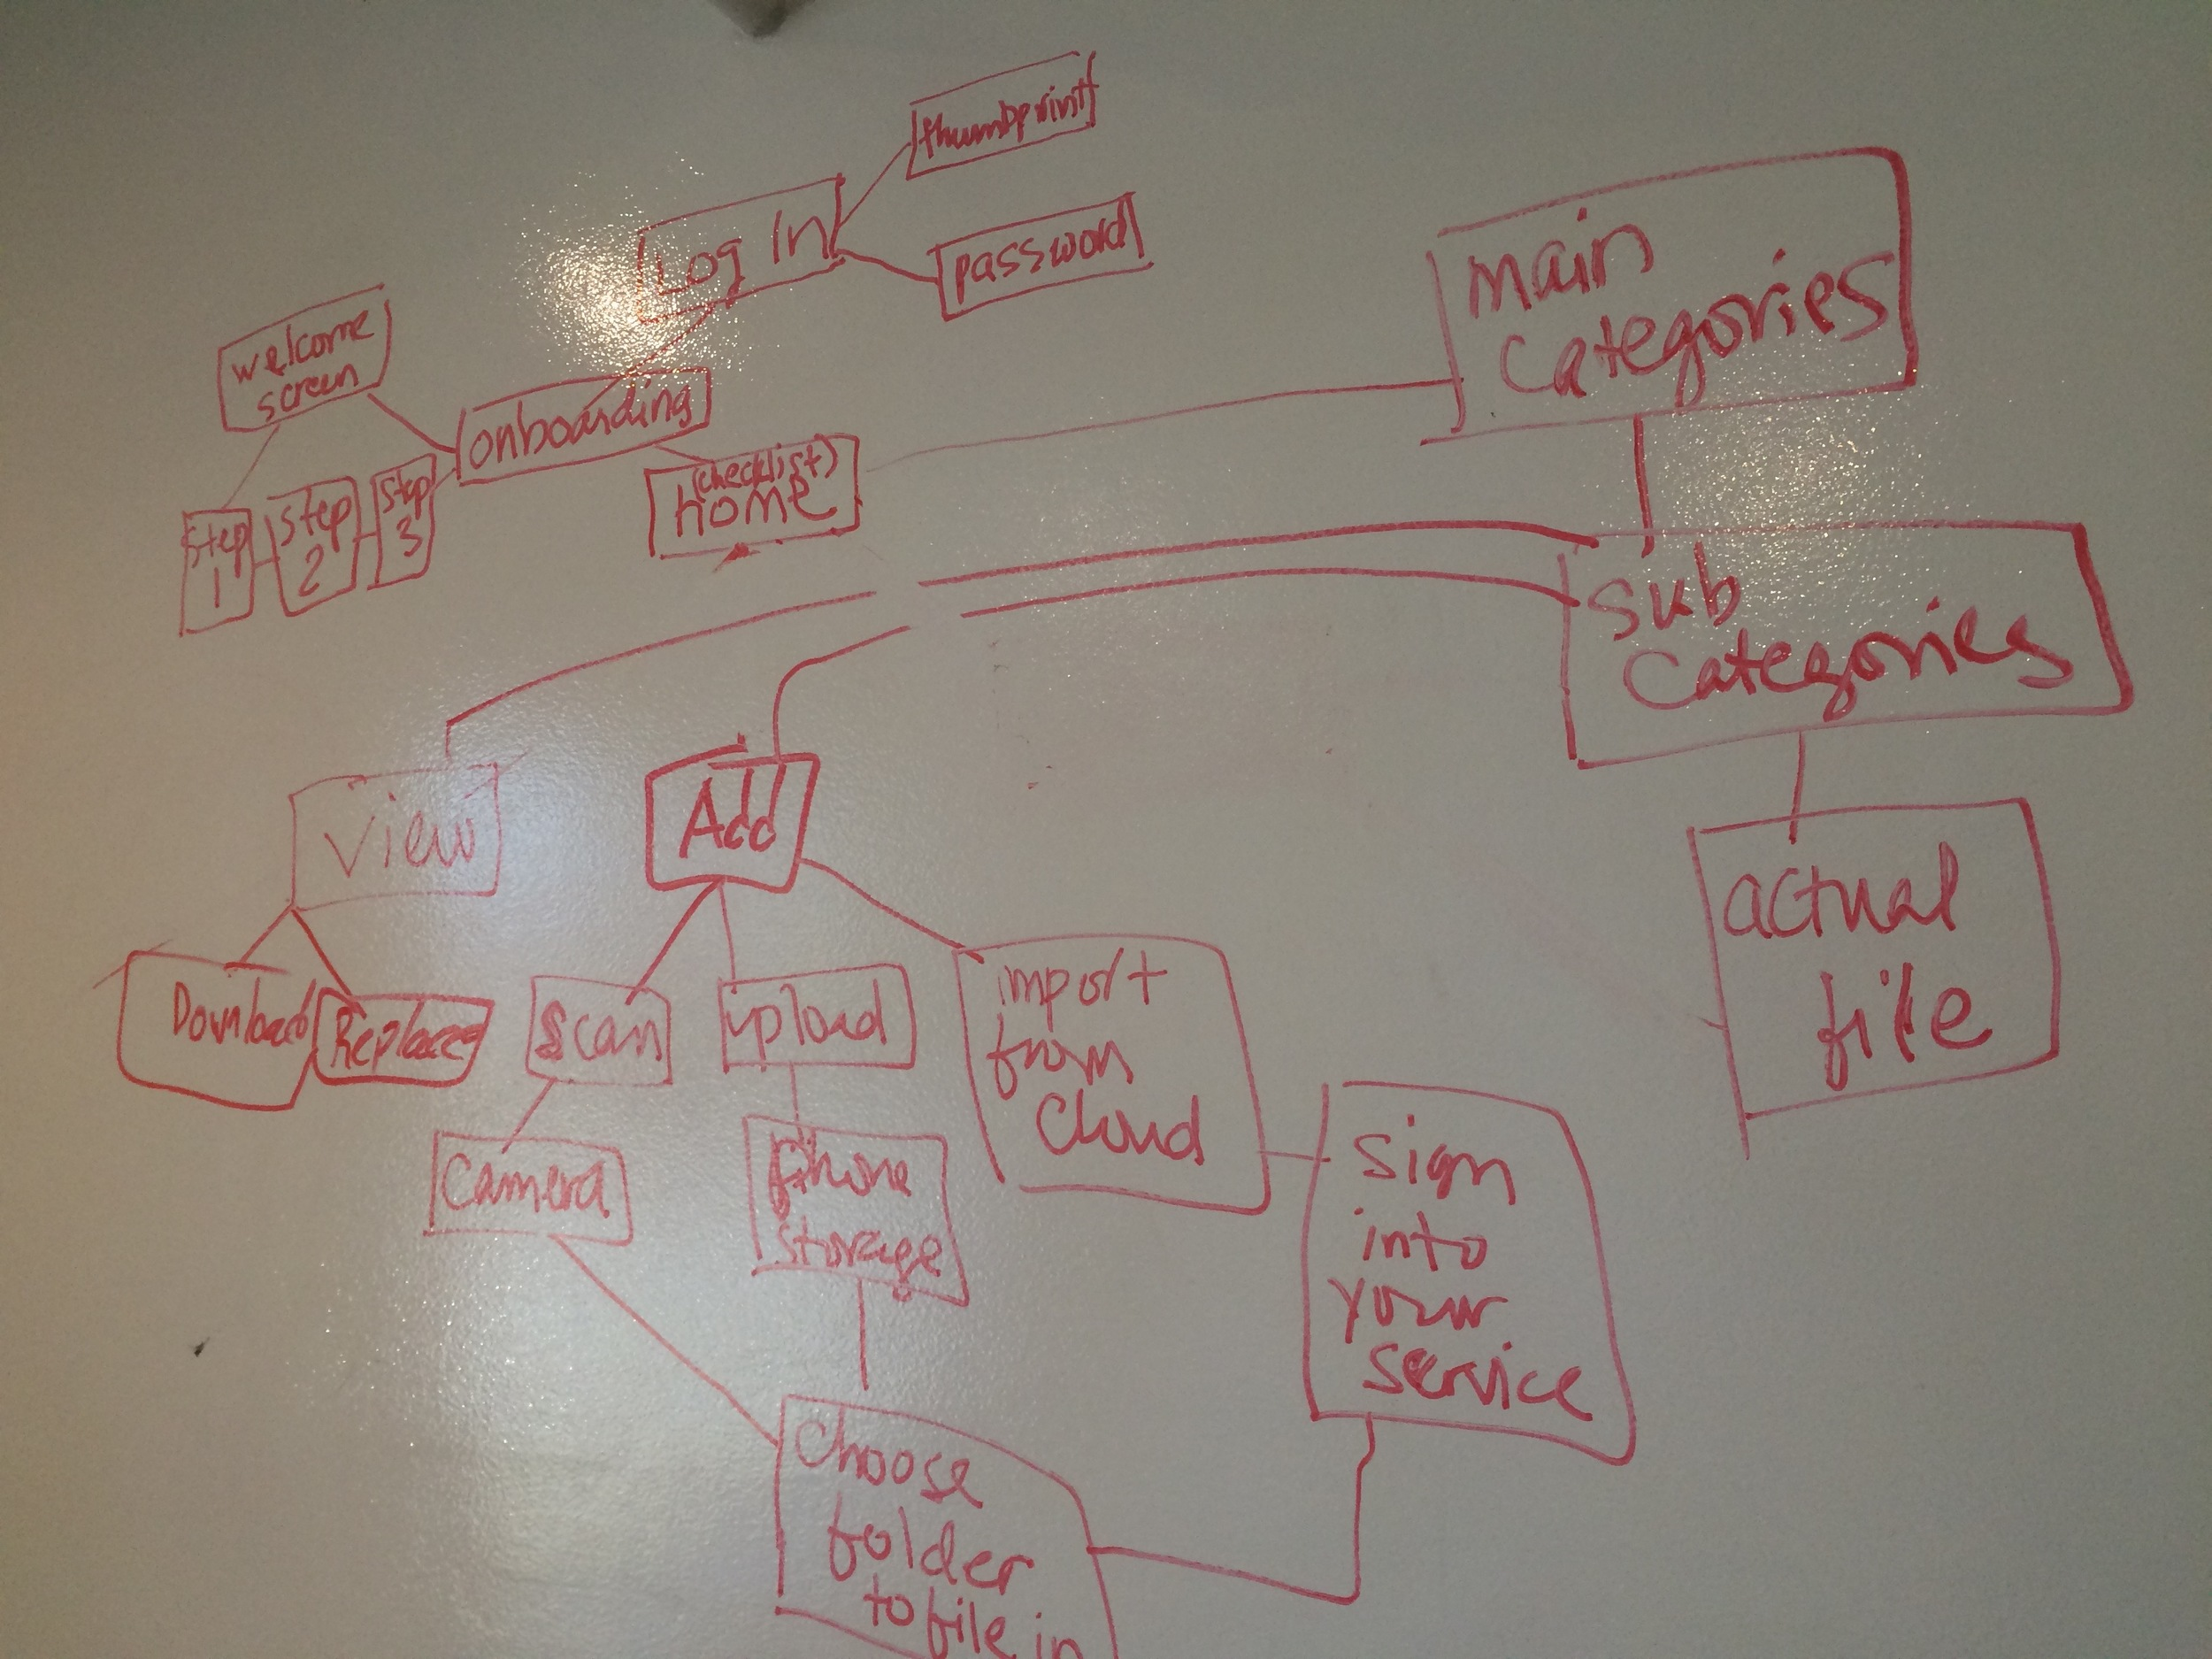 Concept Map